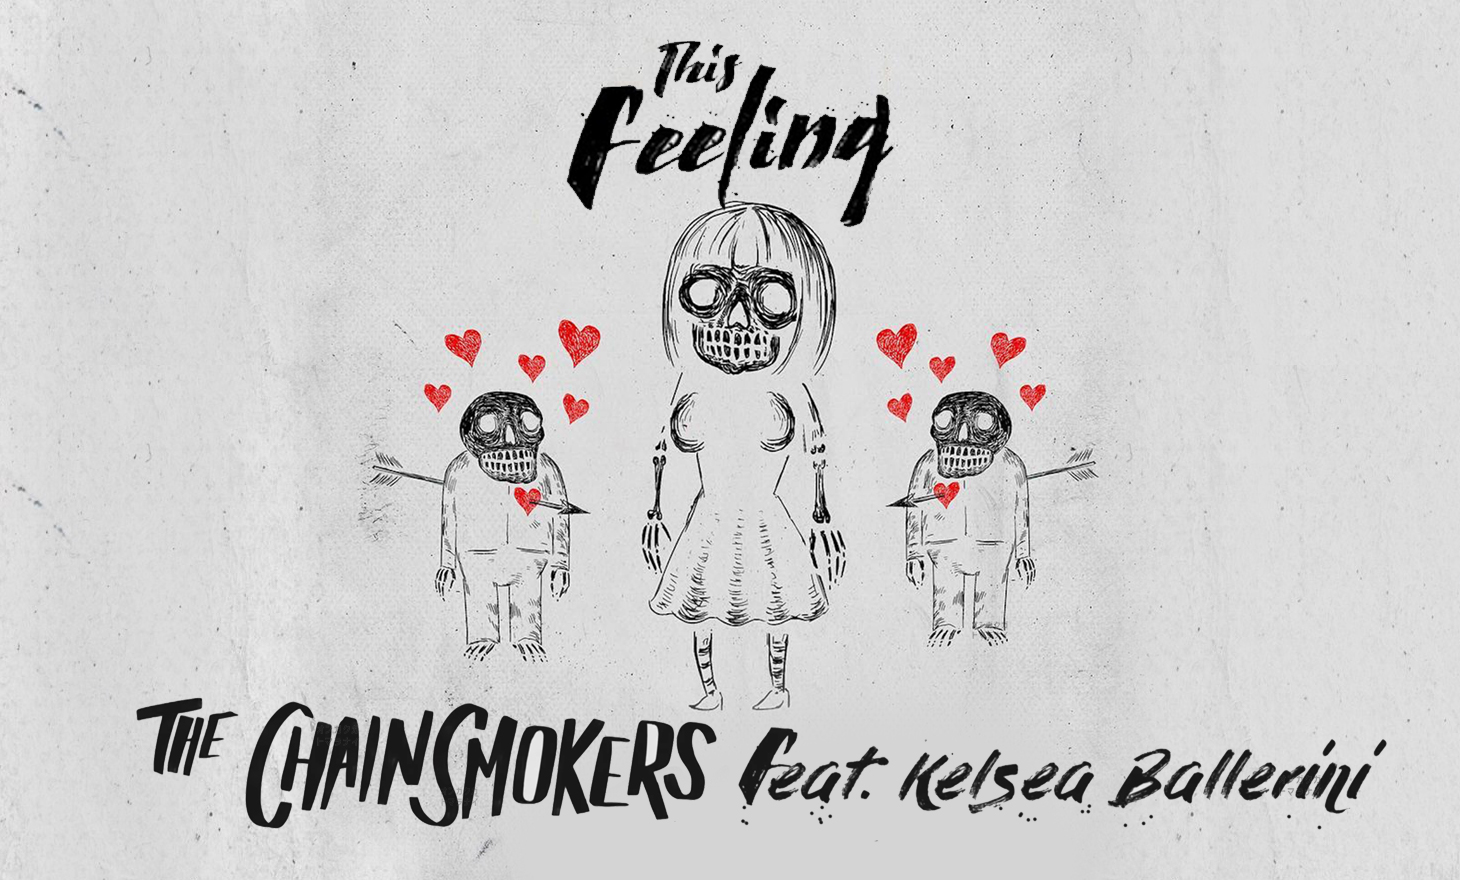 The Chainsmokers : This Feeling